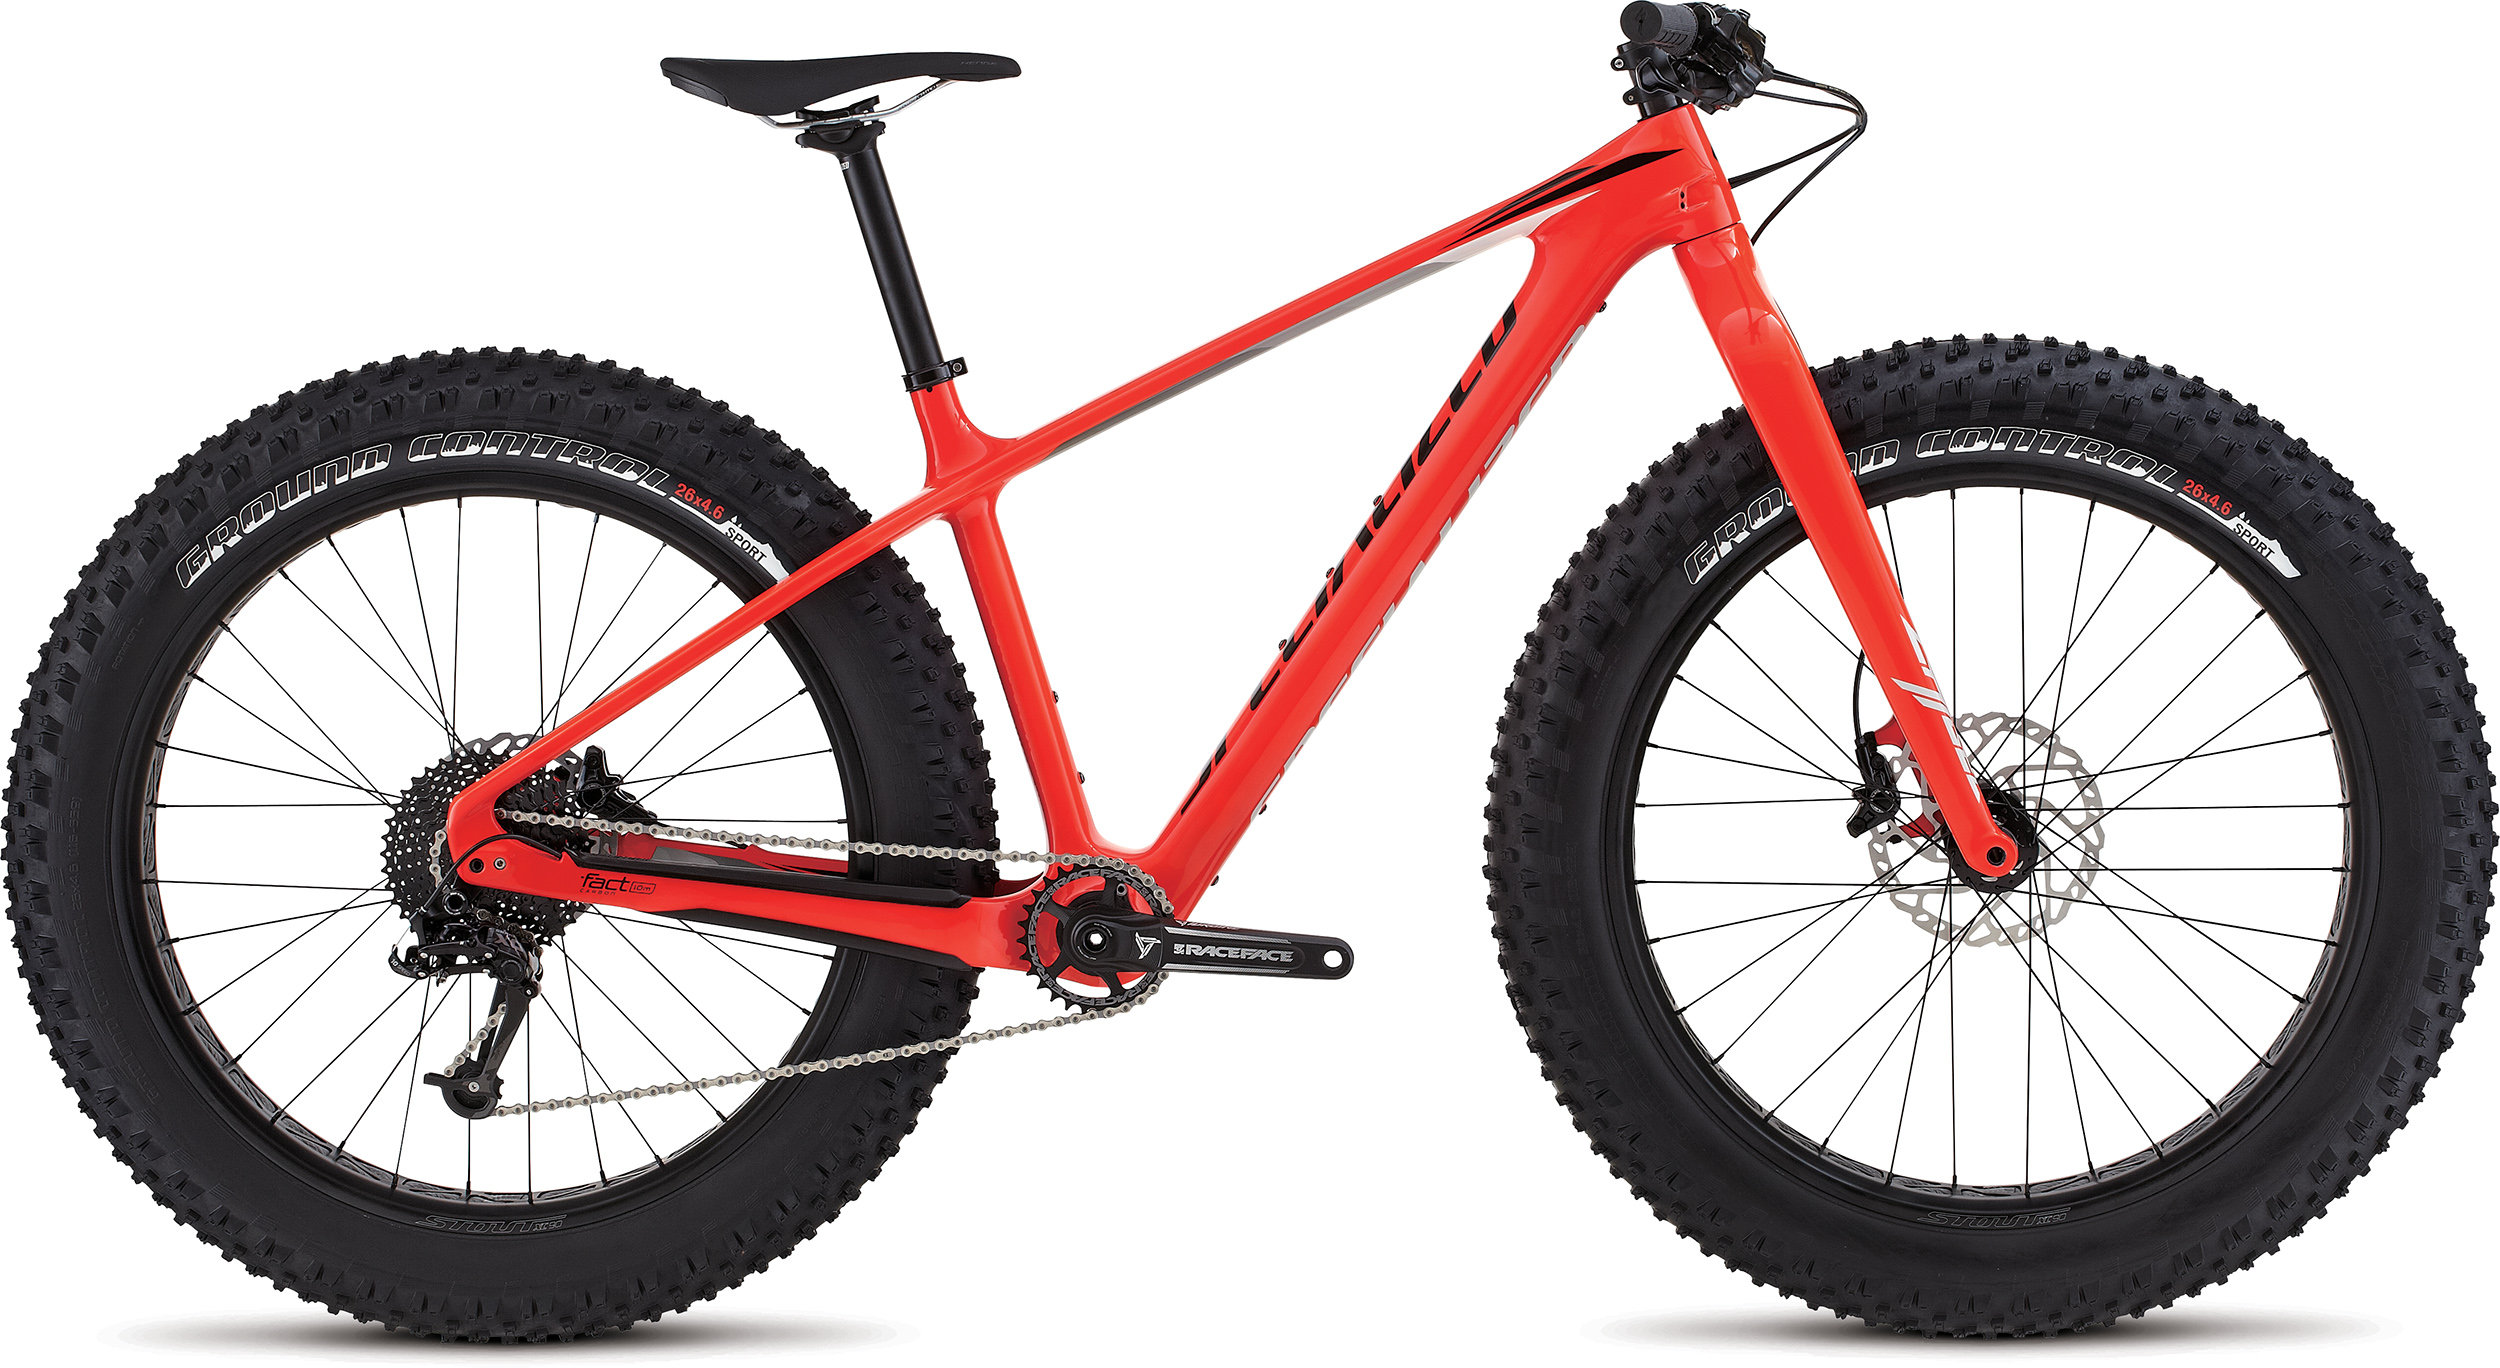 SPECIALIZED FATBOY COMP CARBON RKTRED/BLK/GRY S - Bike Maniac